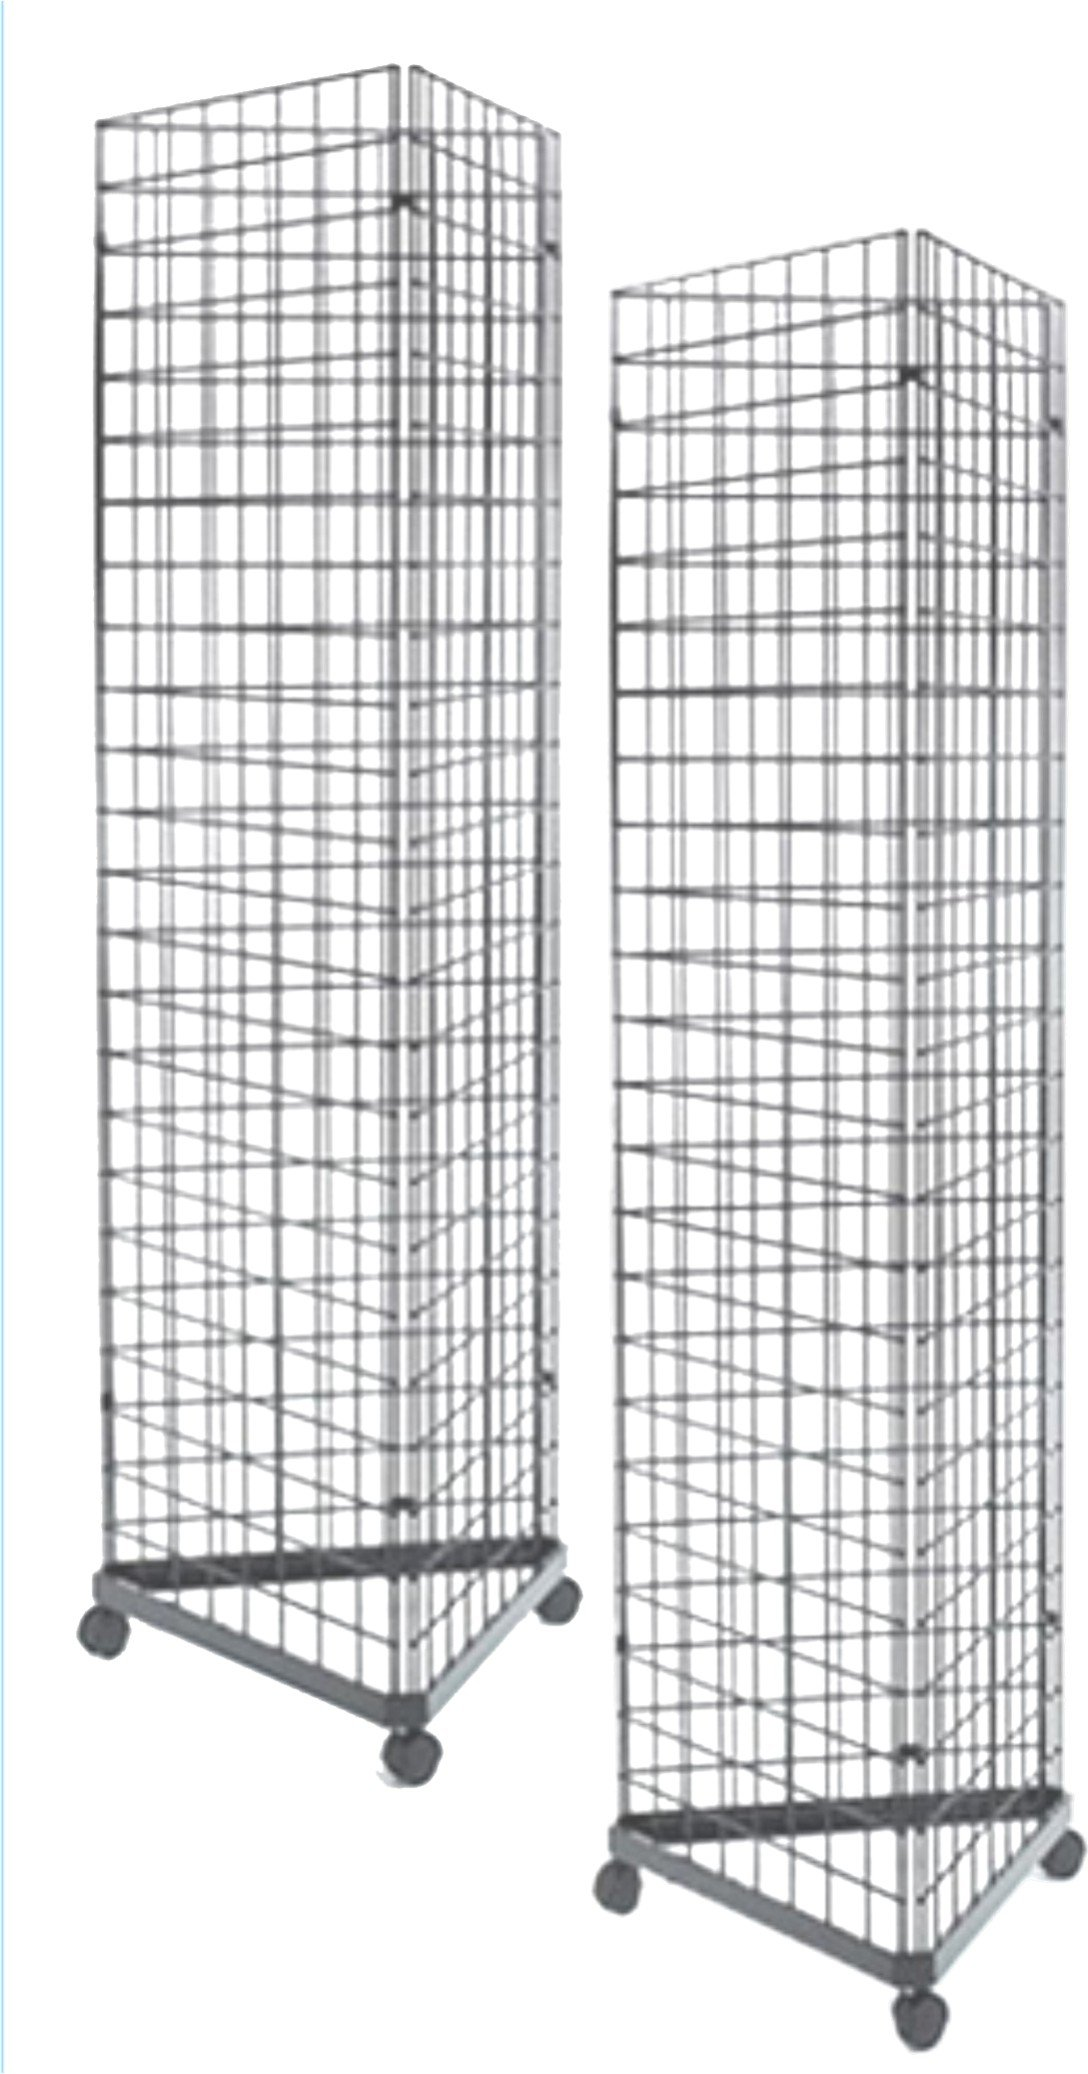 2' x 6' Grid Panel 3-Sided Tower Floorstanding Display Kit with Wheels, 2-Pack. Chrome.